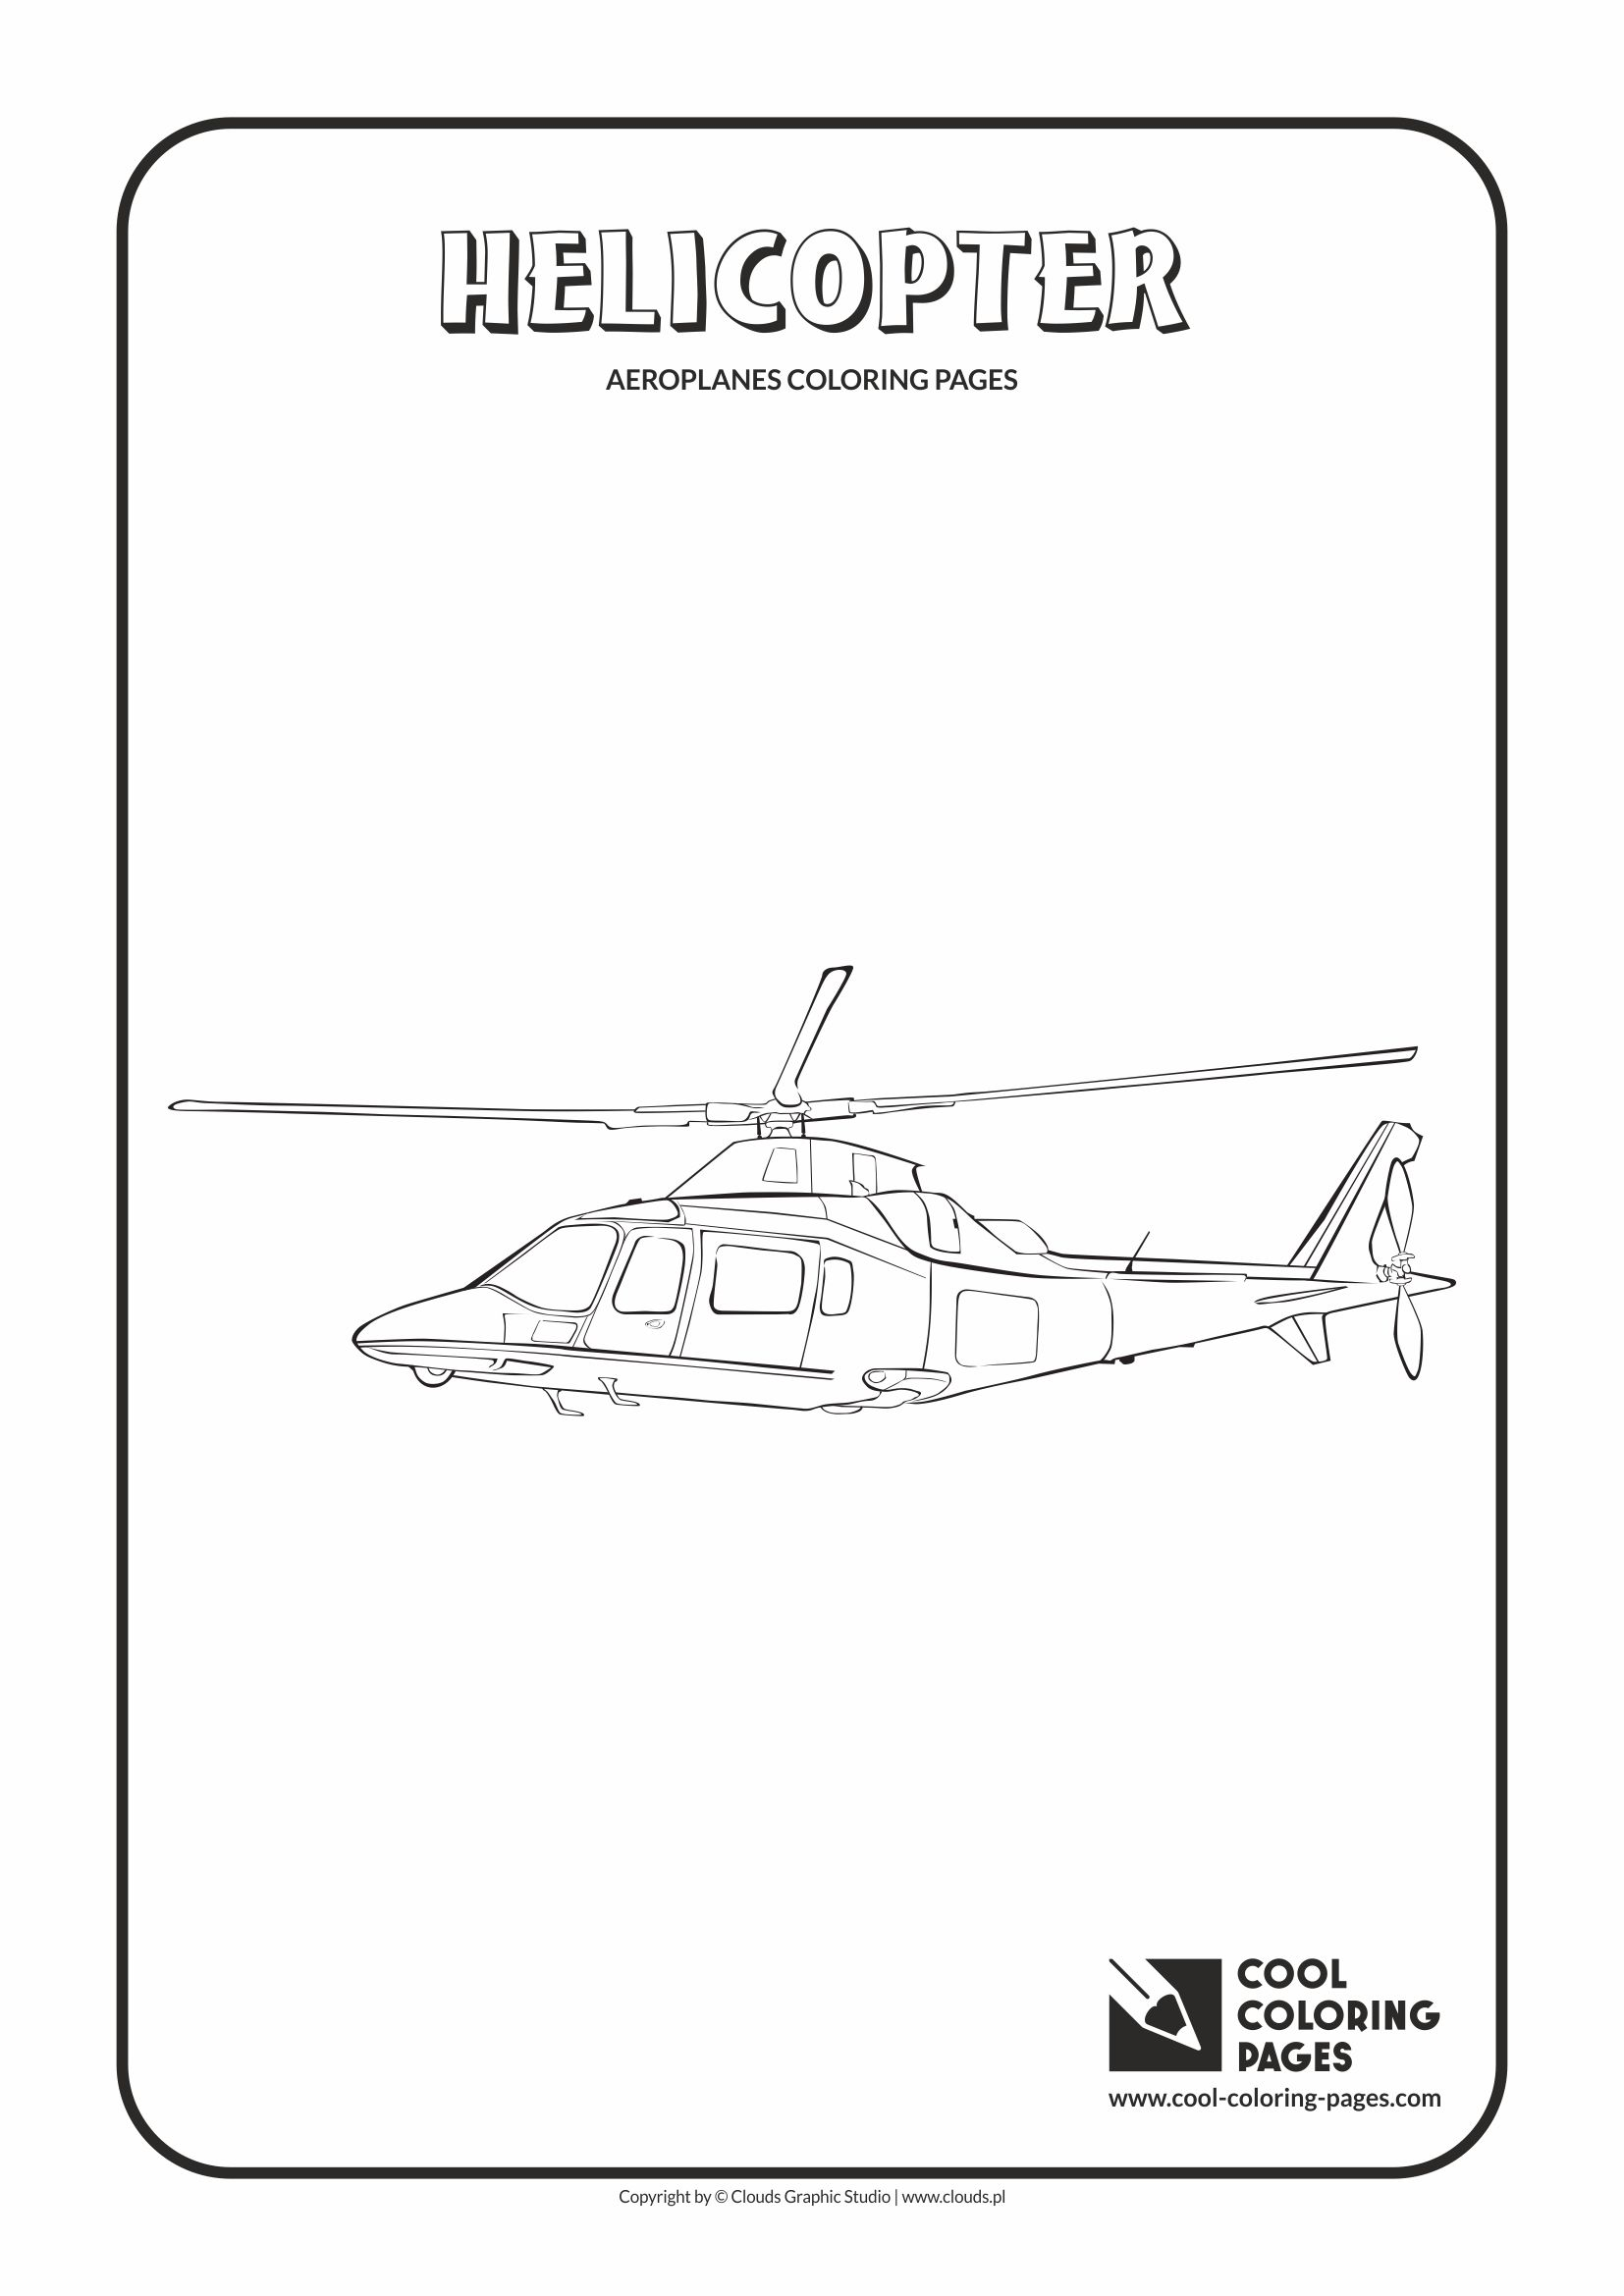 Cool Coloring Pages - Vehicles / Helicopter / Coloring page with helicopter